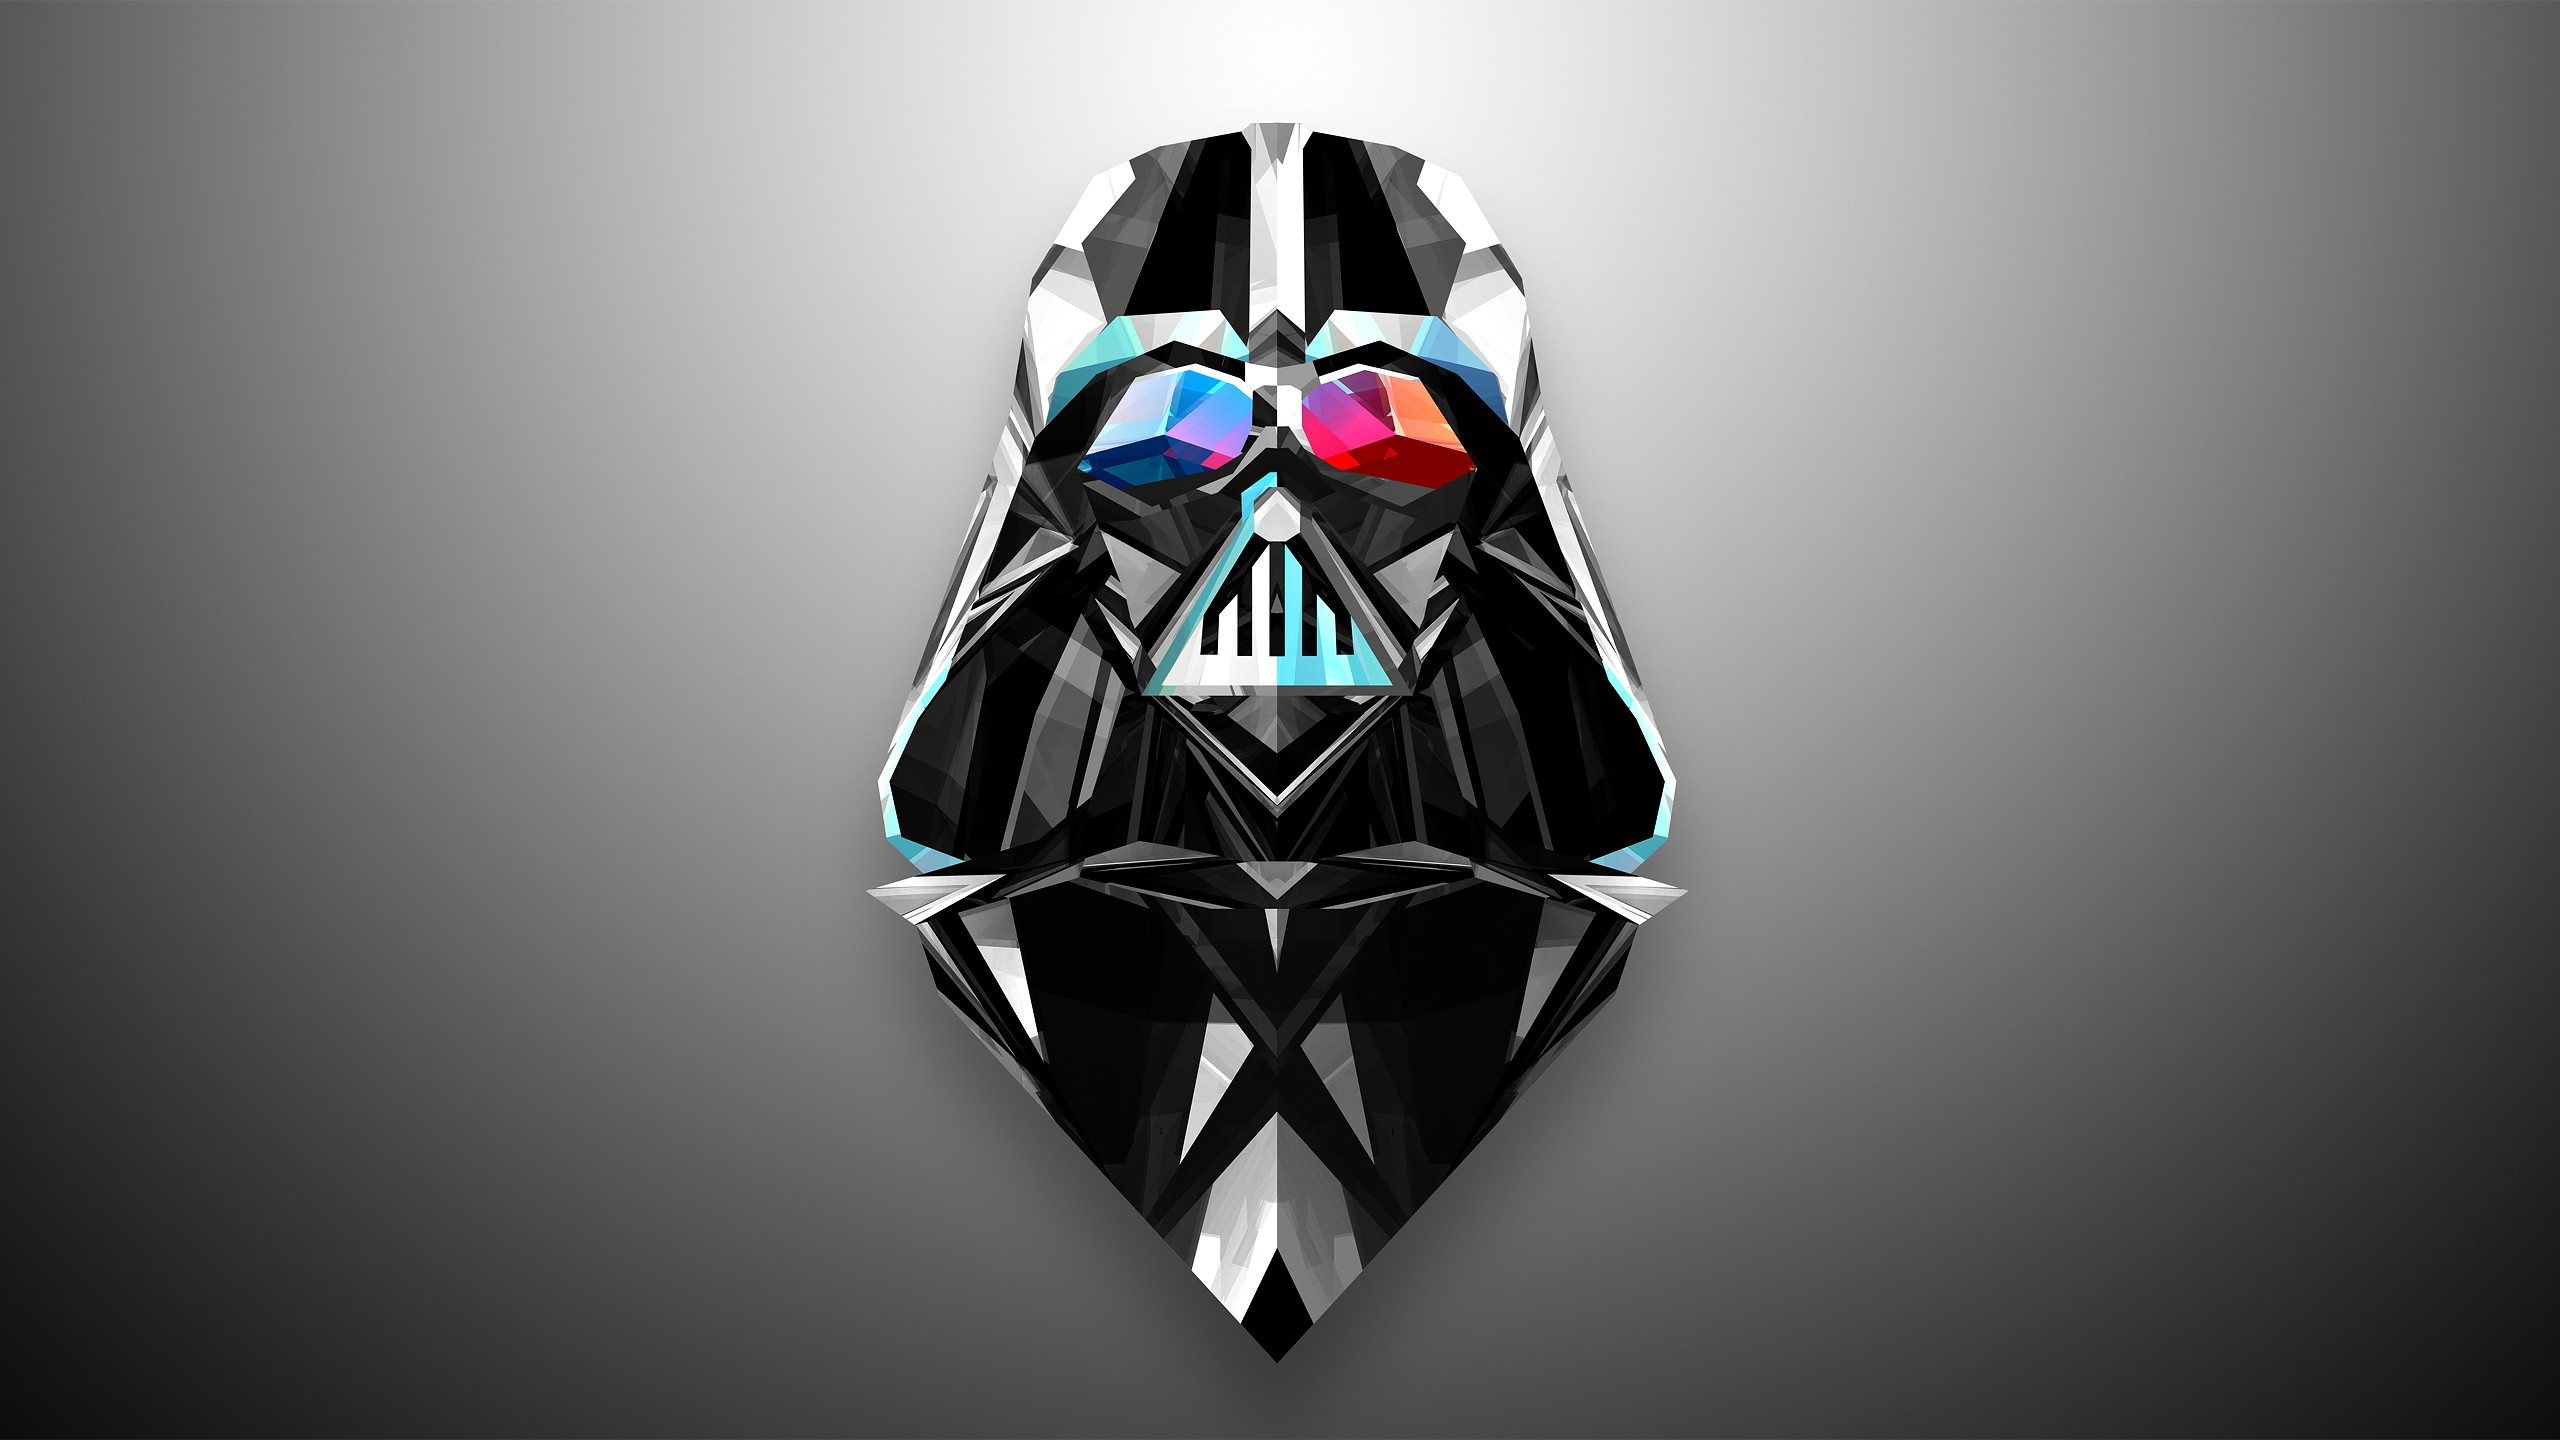 darth vader wallpaper star wars digital picture